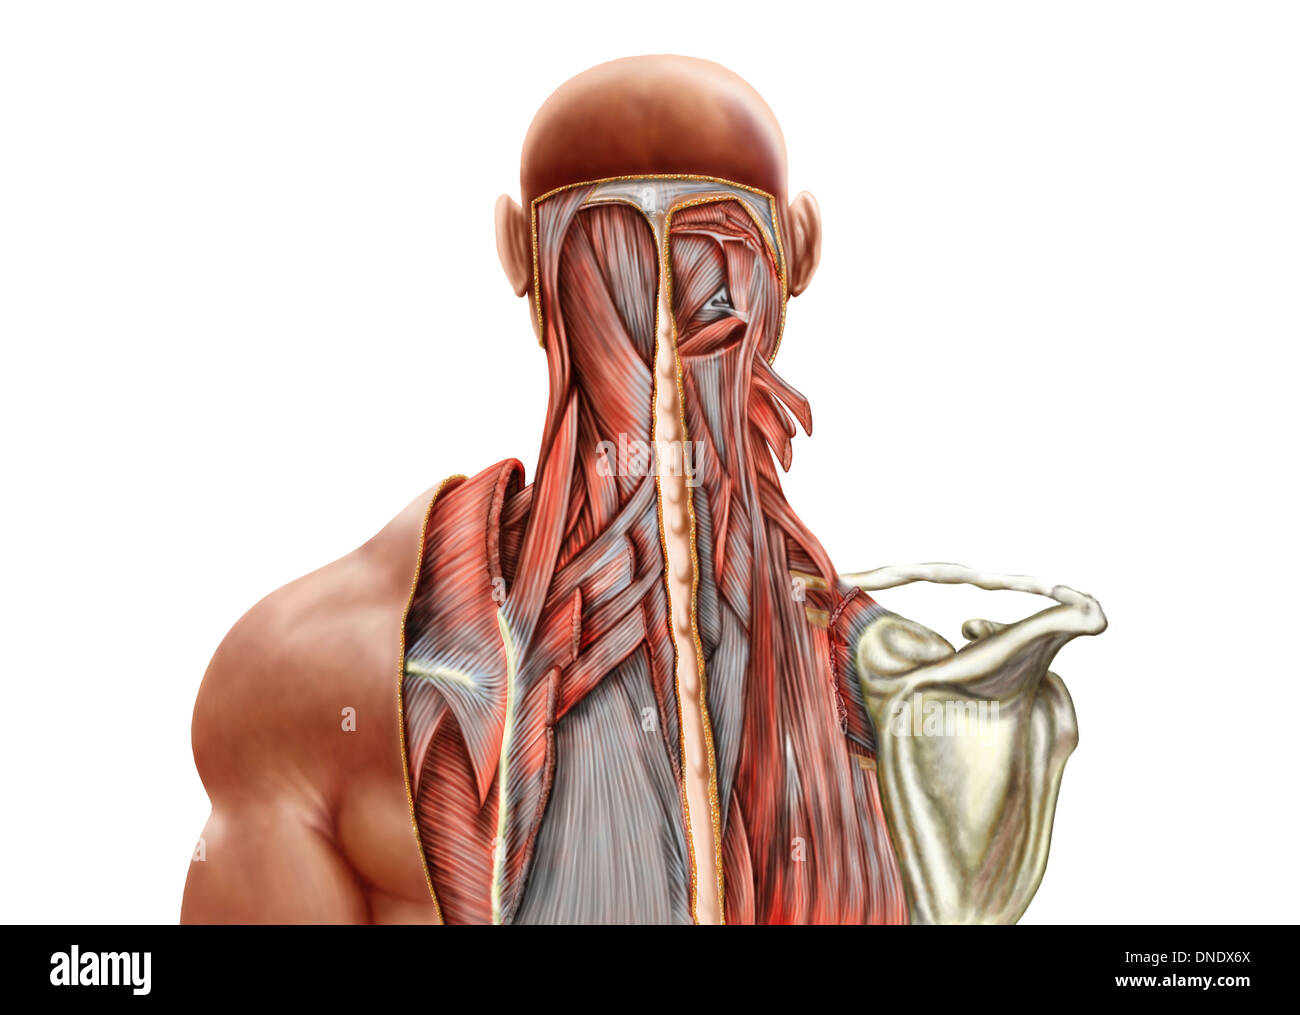 Human anatomy showing deep muscles in the neck and upper back Stock ...